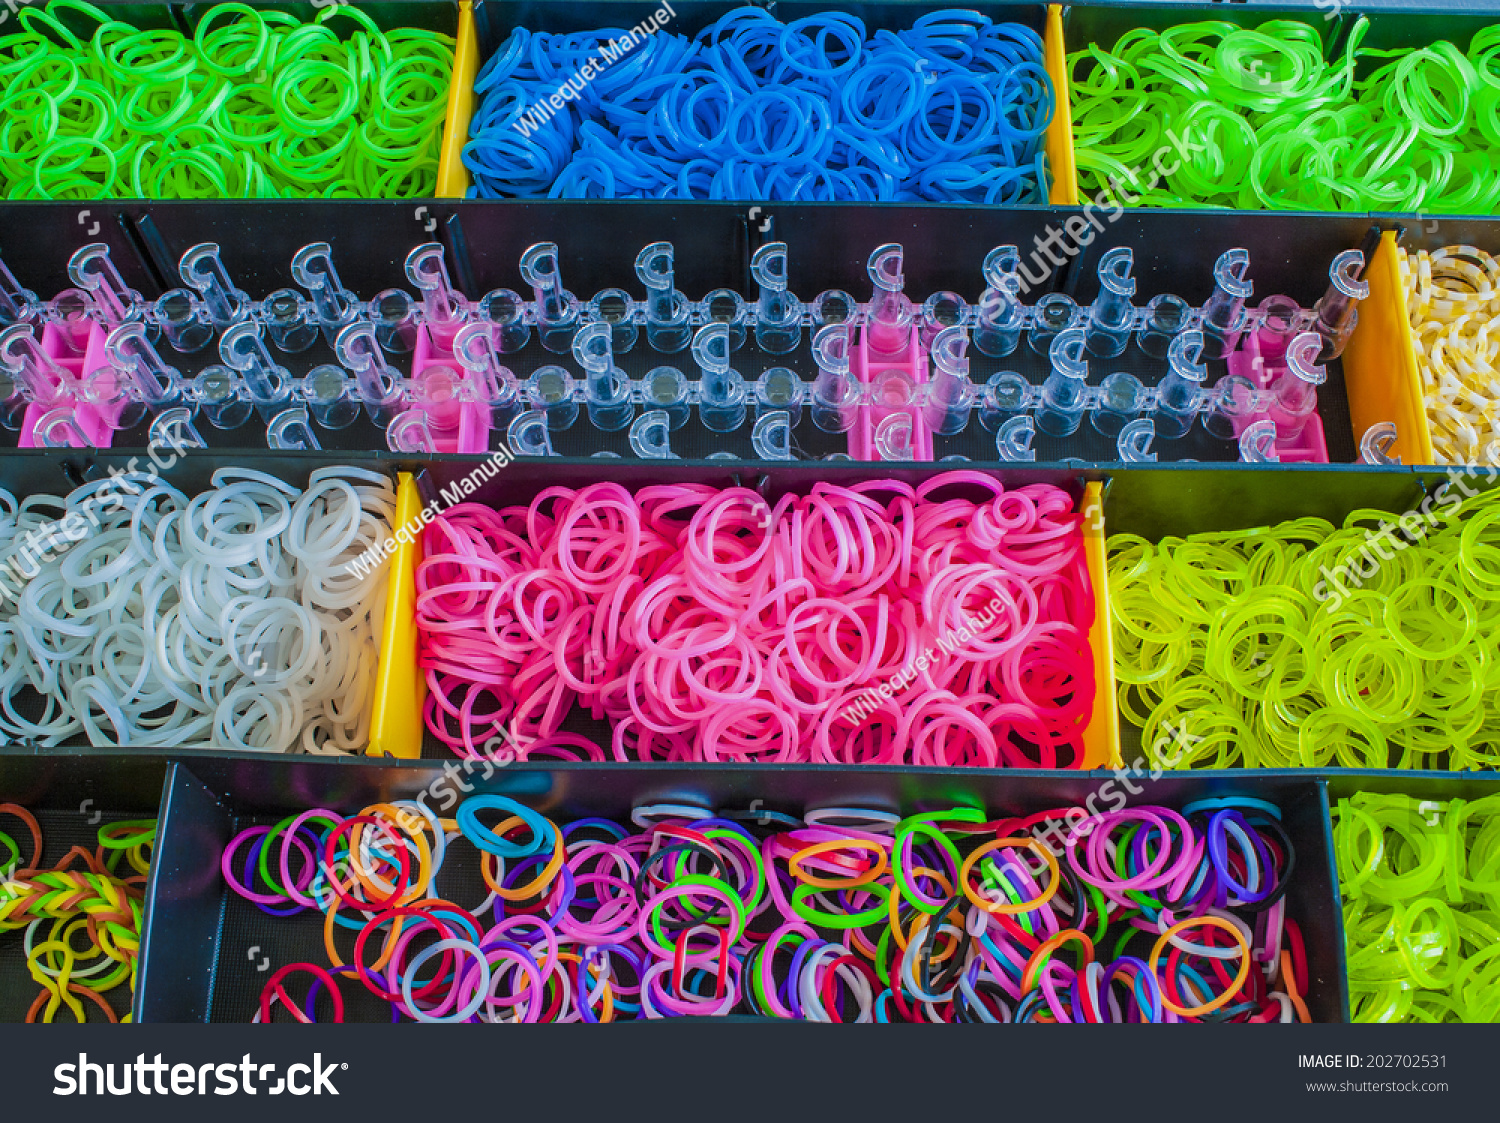 or rubber loom looms buy product blending refill colorful toys color best bracelets band bands rainbow